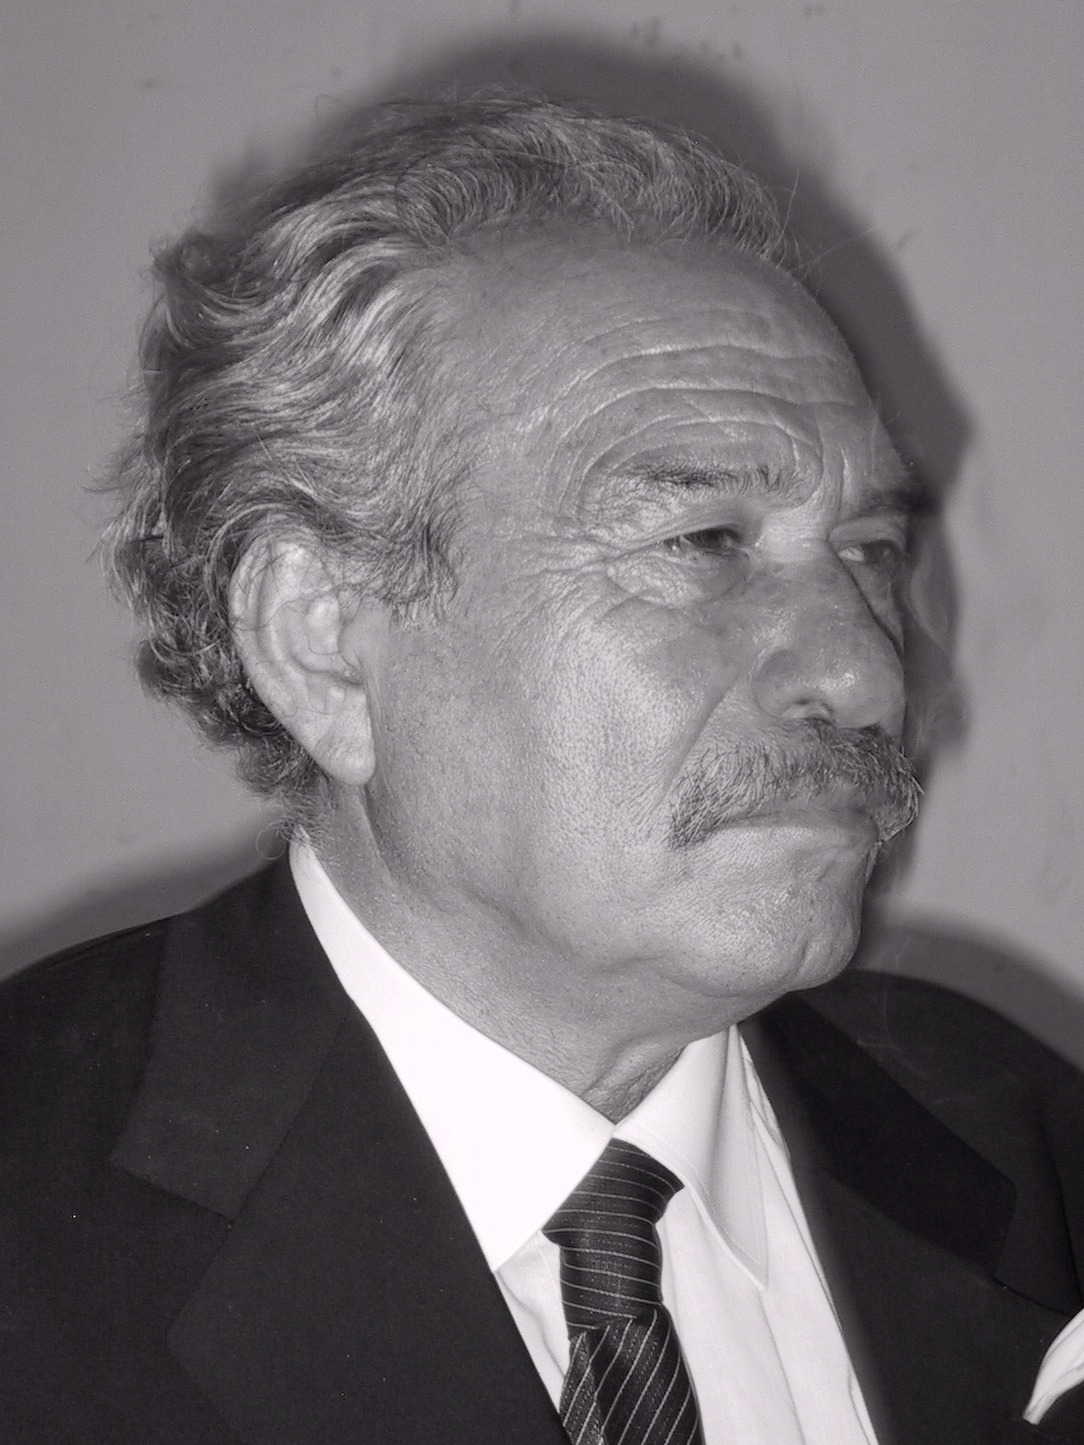 Image of Jannis Kounellis from Wikidata